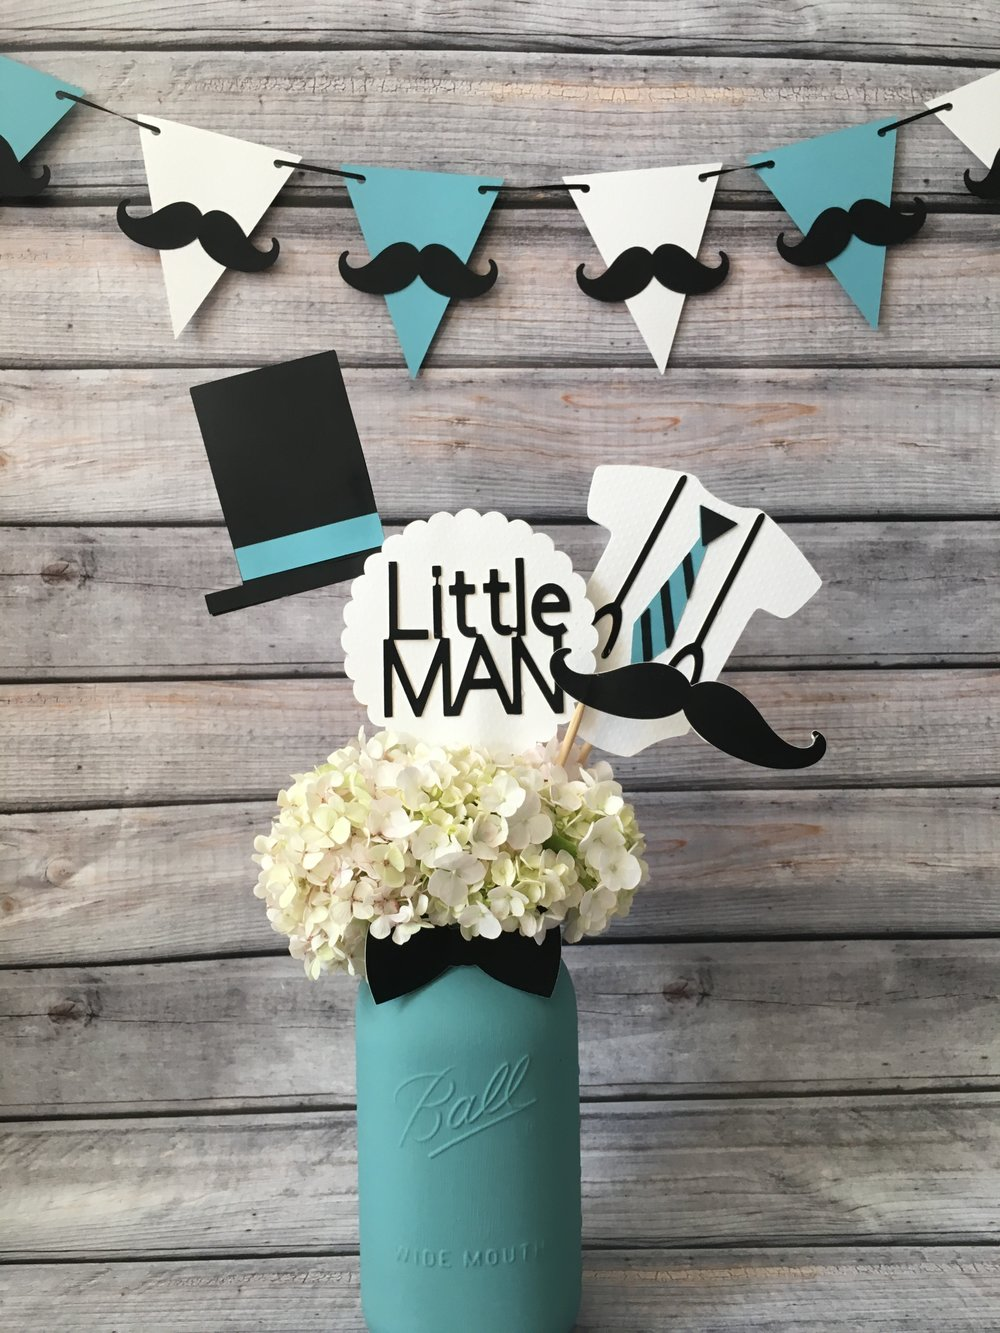 Little Man baby shower centerpieces